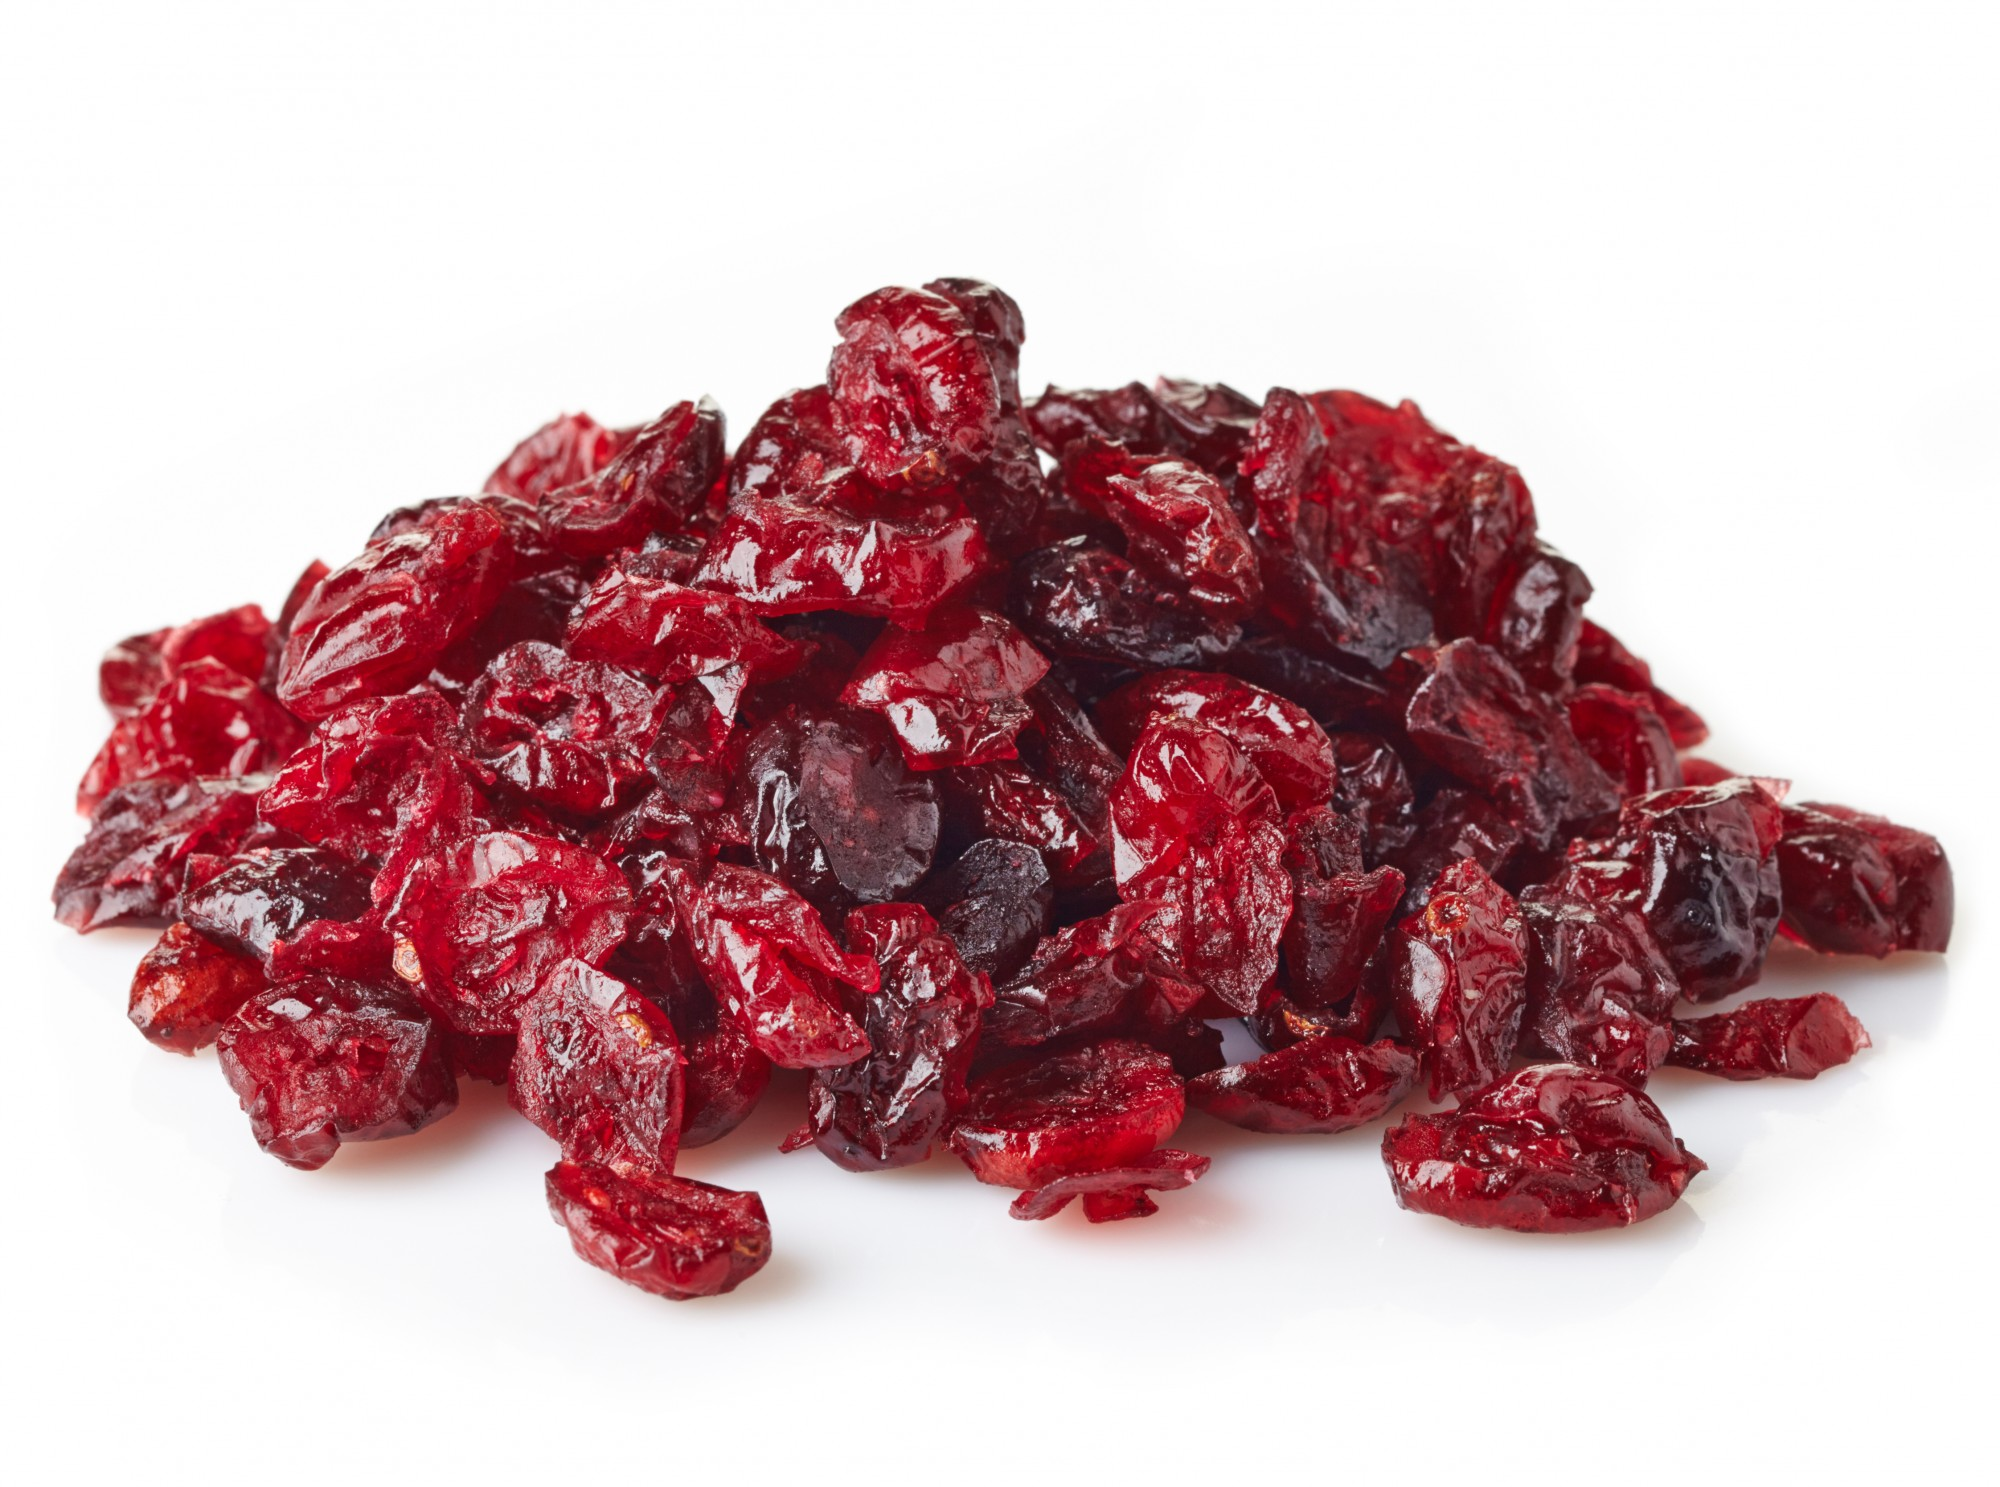 Dried cranberrys